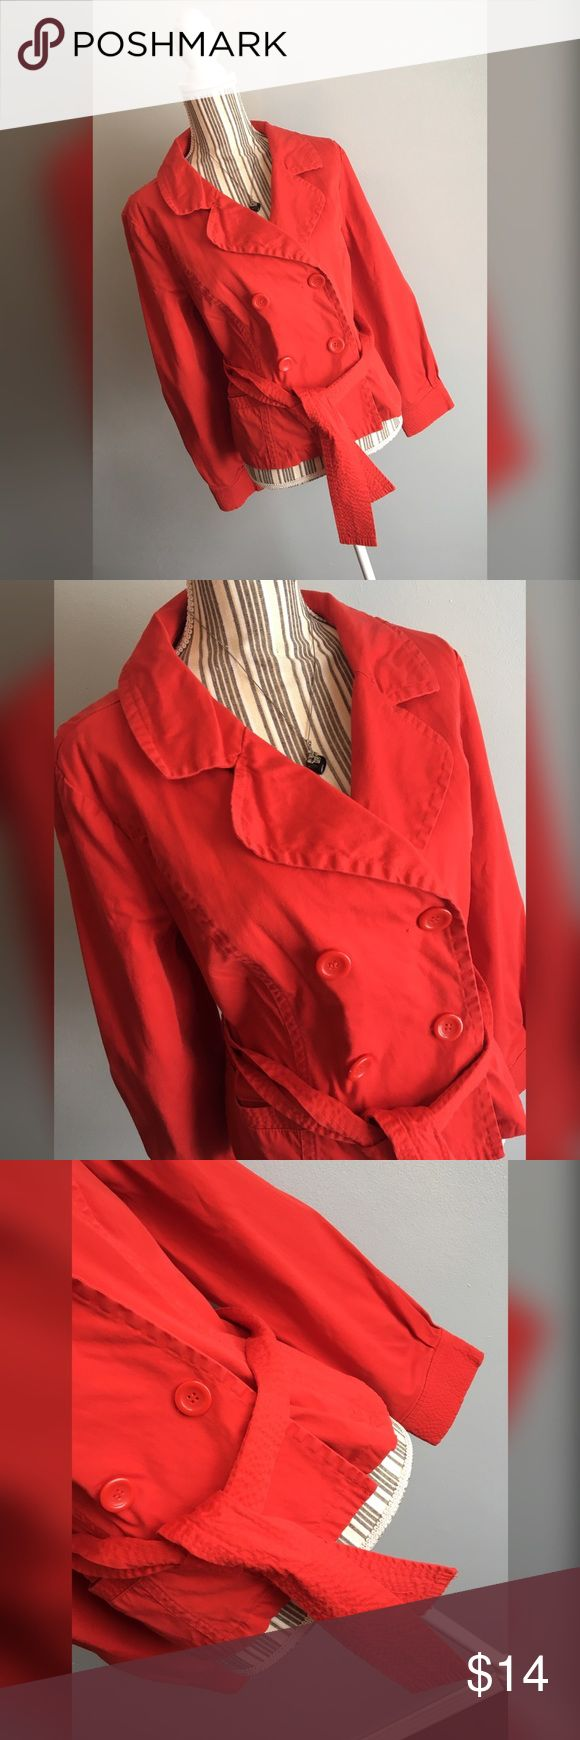 """🎀Live A Little Pea Coat🎀 Red belted pea coat by Live A Little. Size XL. Bust 43"""" lying flat, stretches to 46"""". Shoulder to hem length 22.5"""". Live A Little  Jackets & Coats Pea Coats"""